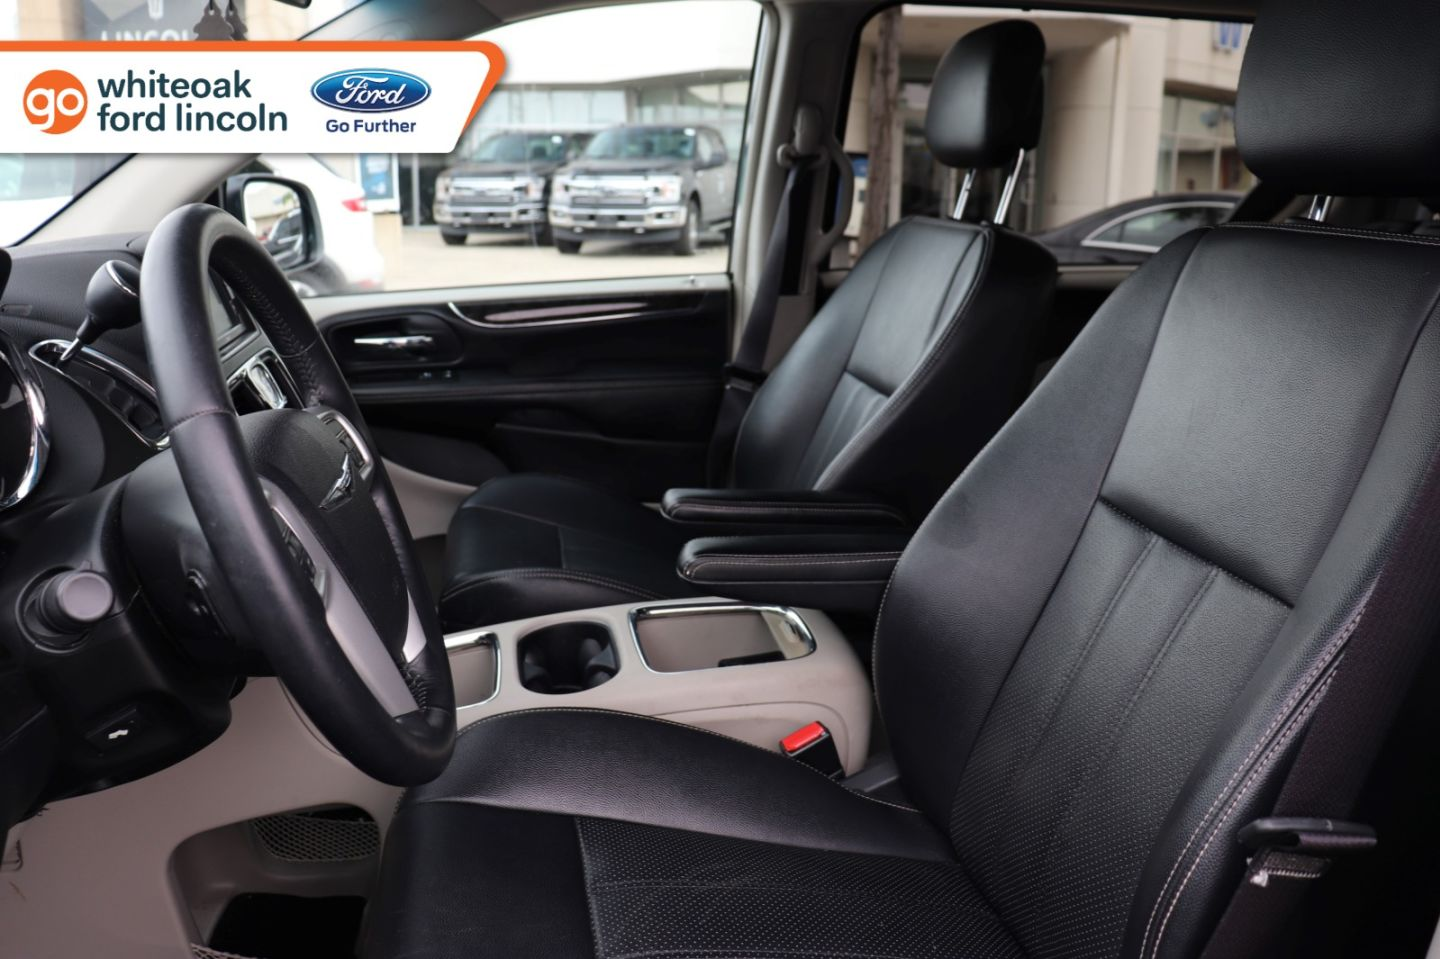 2014 Chrysler Town & Country Touring for sale in Mississauga, Ontario